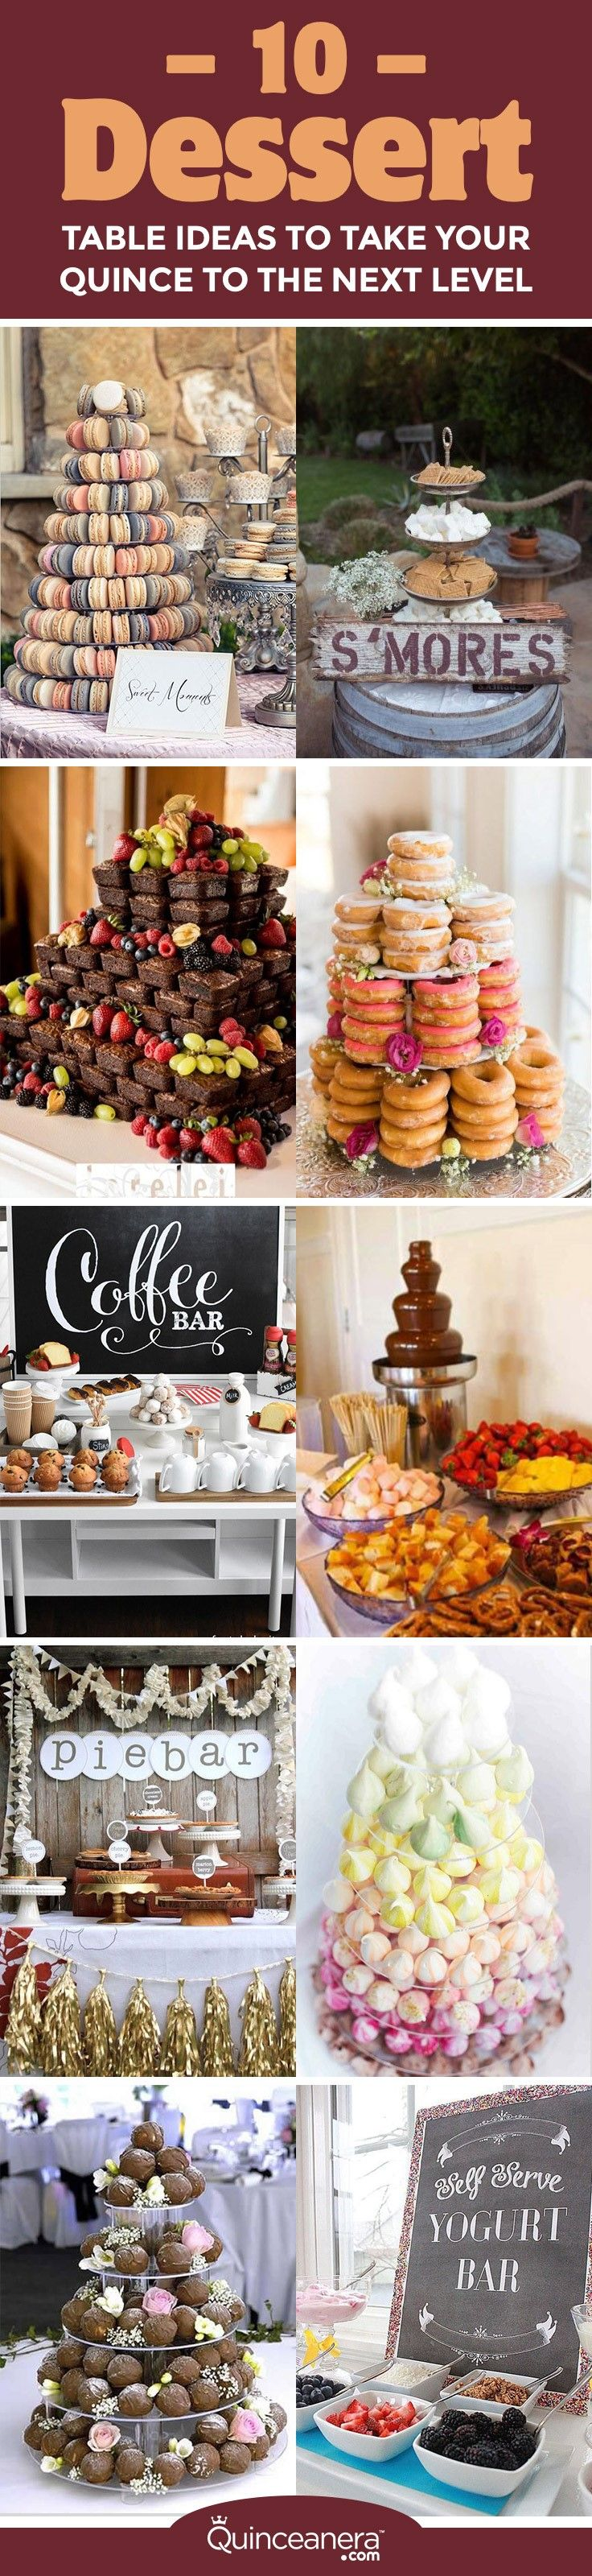 Take a look at the following tempting options for your dessert table that way better than a traditional cake. You might even consider substituting your quinceanera cake for one of these one-of-a-kind desserts: - See more at: http://www.quinceanera.com/food/10-dessert-table-ideas-take-quince-next-level/?utm_source=pinterest&utm_medium=social&utm_campaign=food-10-dessert-table-ideas-take-quince-next-level#sthash.JnmhDSTU.dpuf